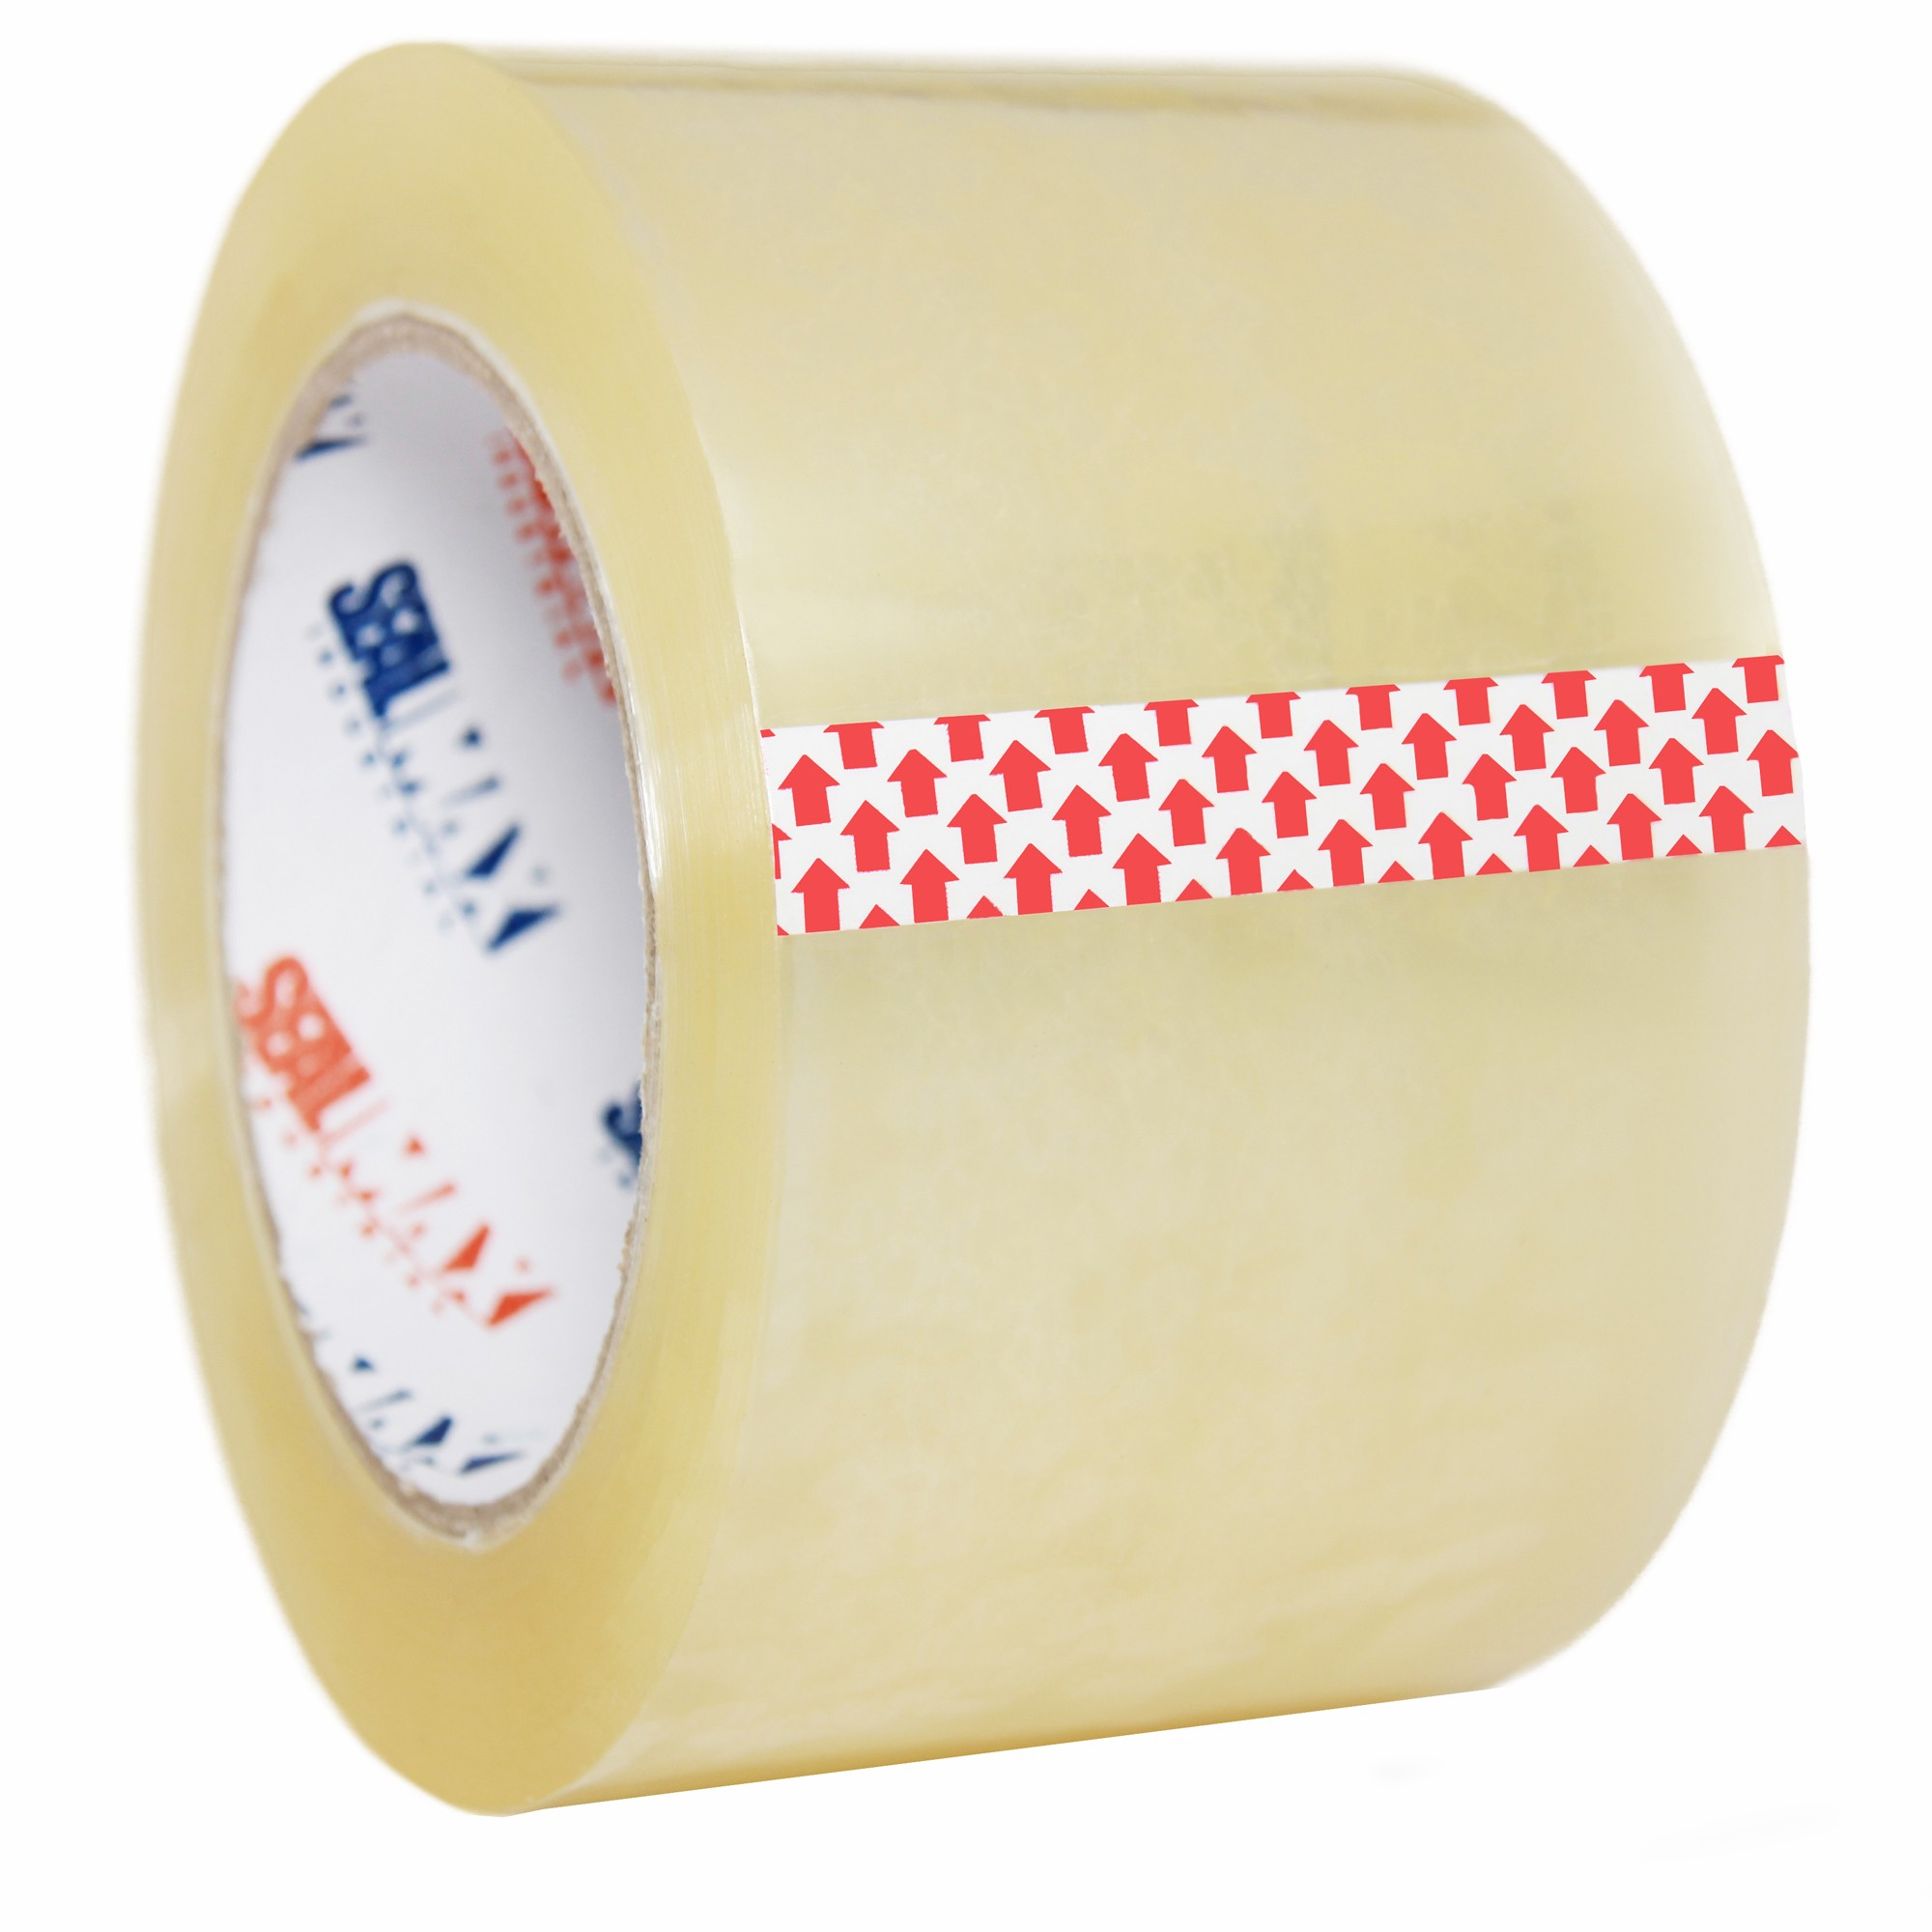 "SealMax By TOTALPACK® Tape Clear 2"" x 110 Yds. 1.8 Mil 36 Rolls Per Case"